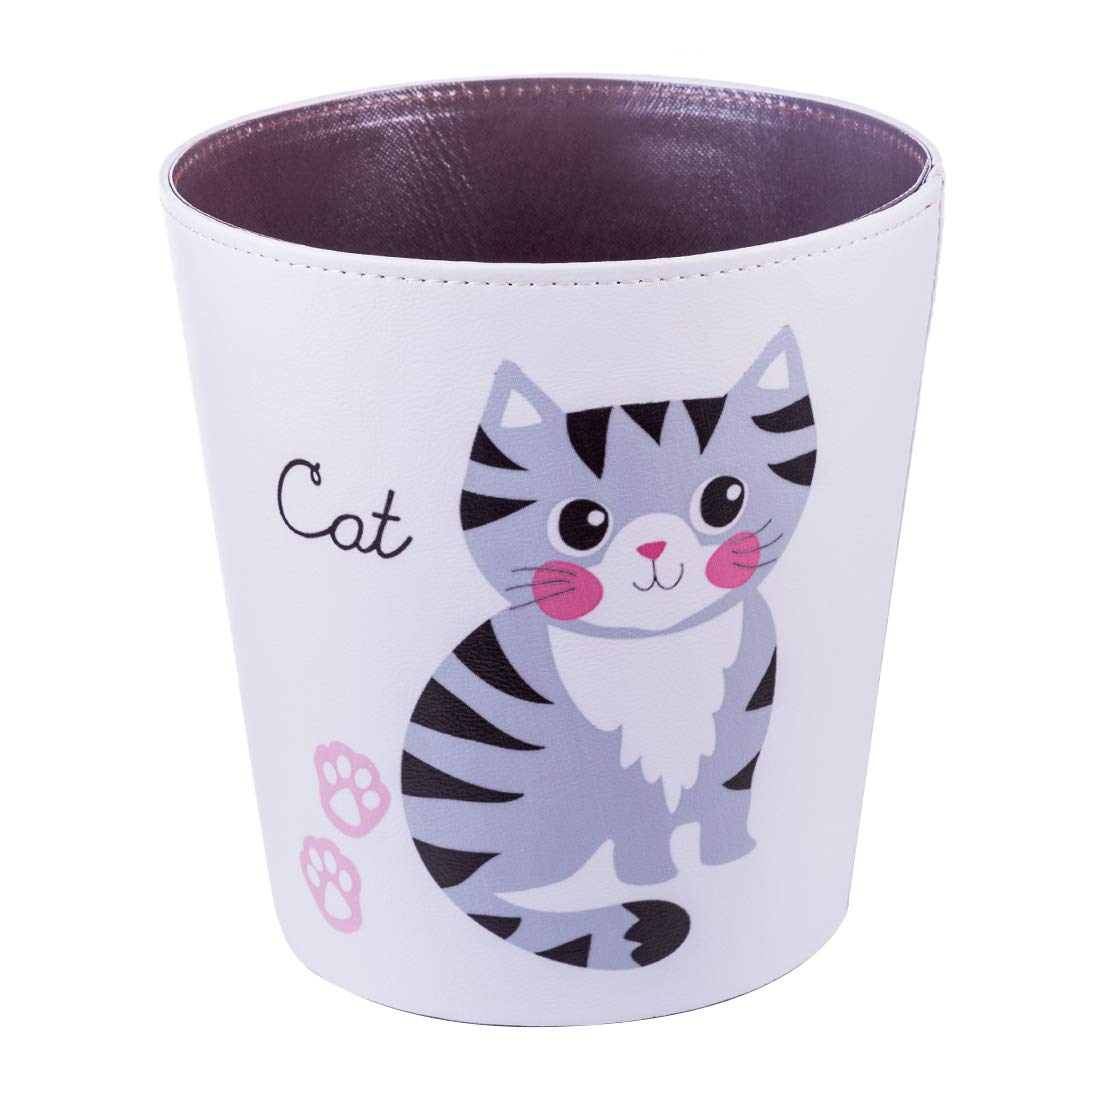 WOLFBUSH Household Trash Bin 10L Garbage Can with Cartoon Pattern Round PU Leather Waste Container Paper Wastebasket Dustbin Rubbish Bin for Home Kithcen Office (Cat)